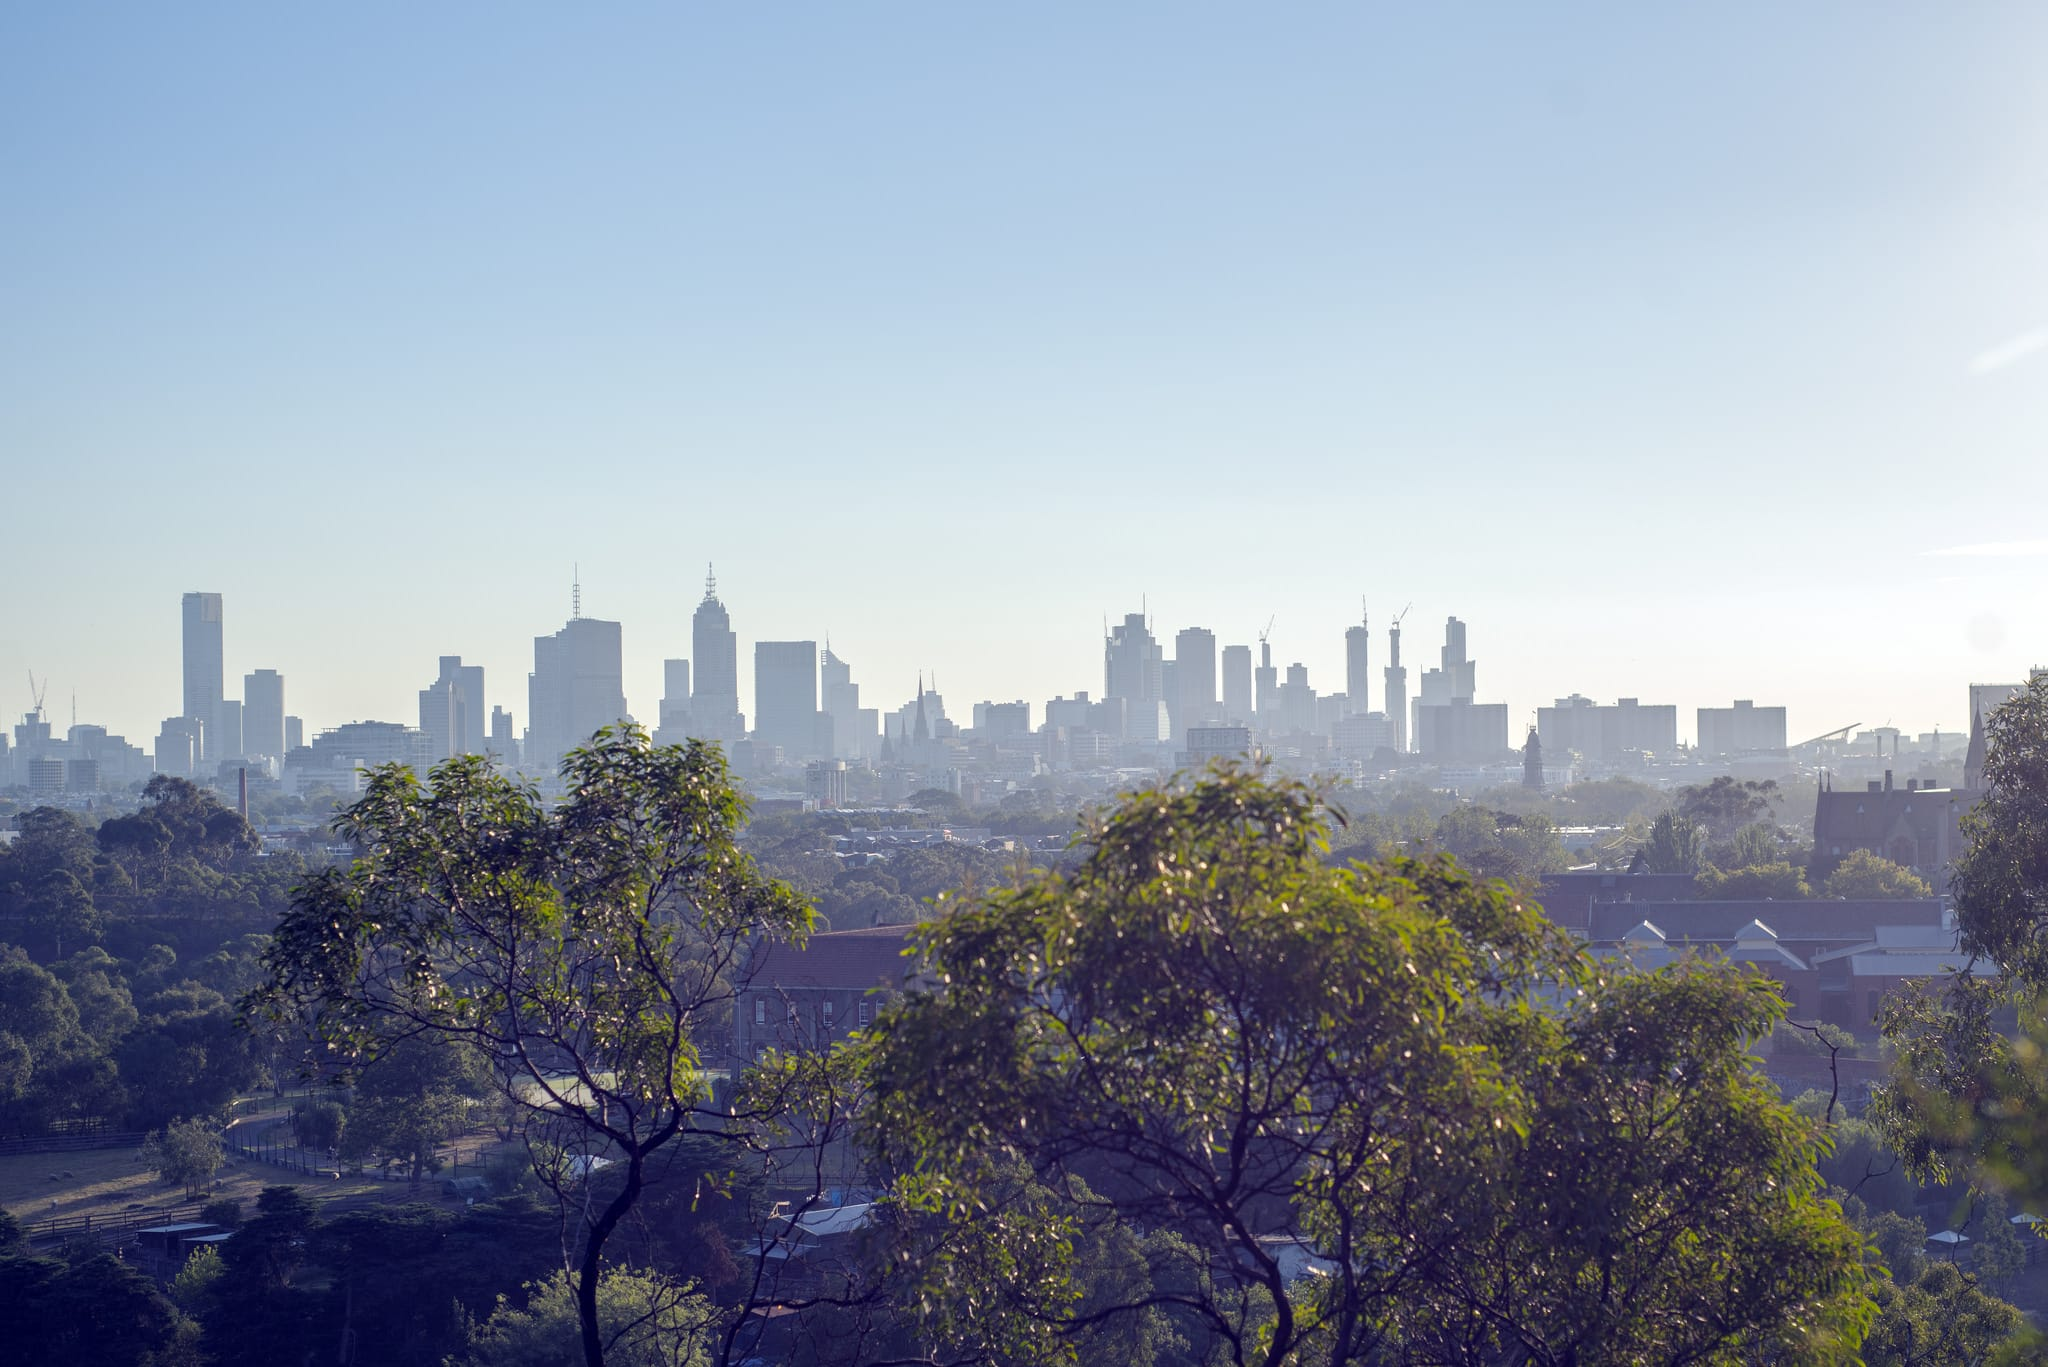 City planning suffers growth pains of Australia's population boom